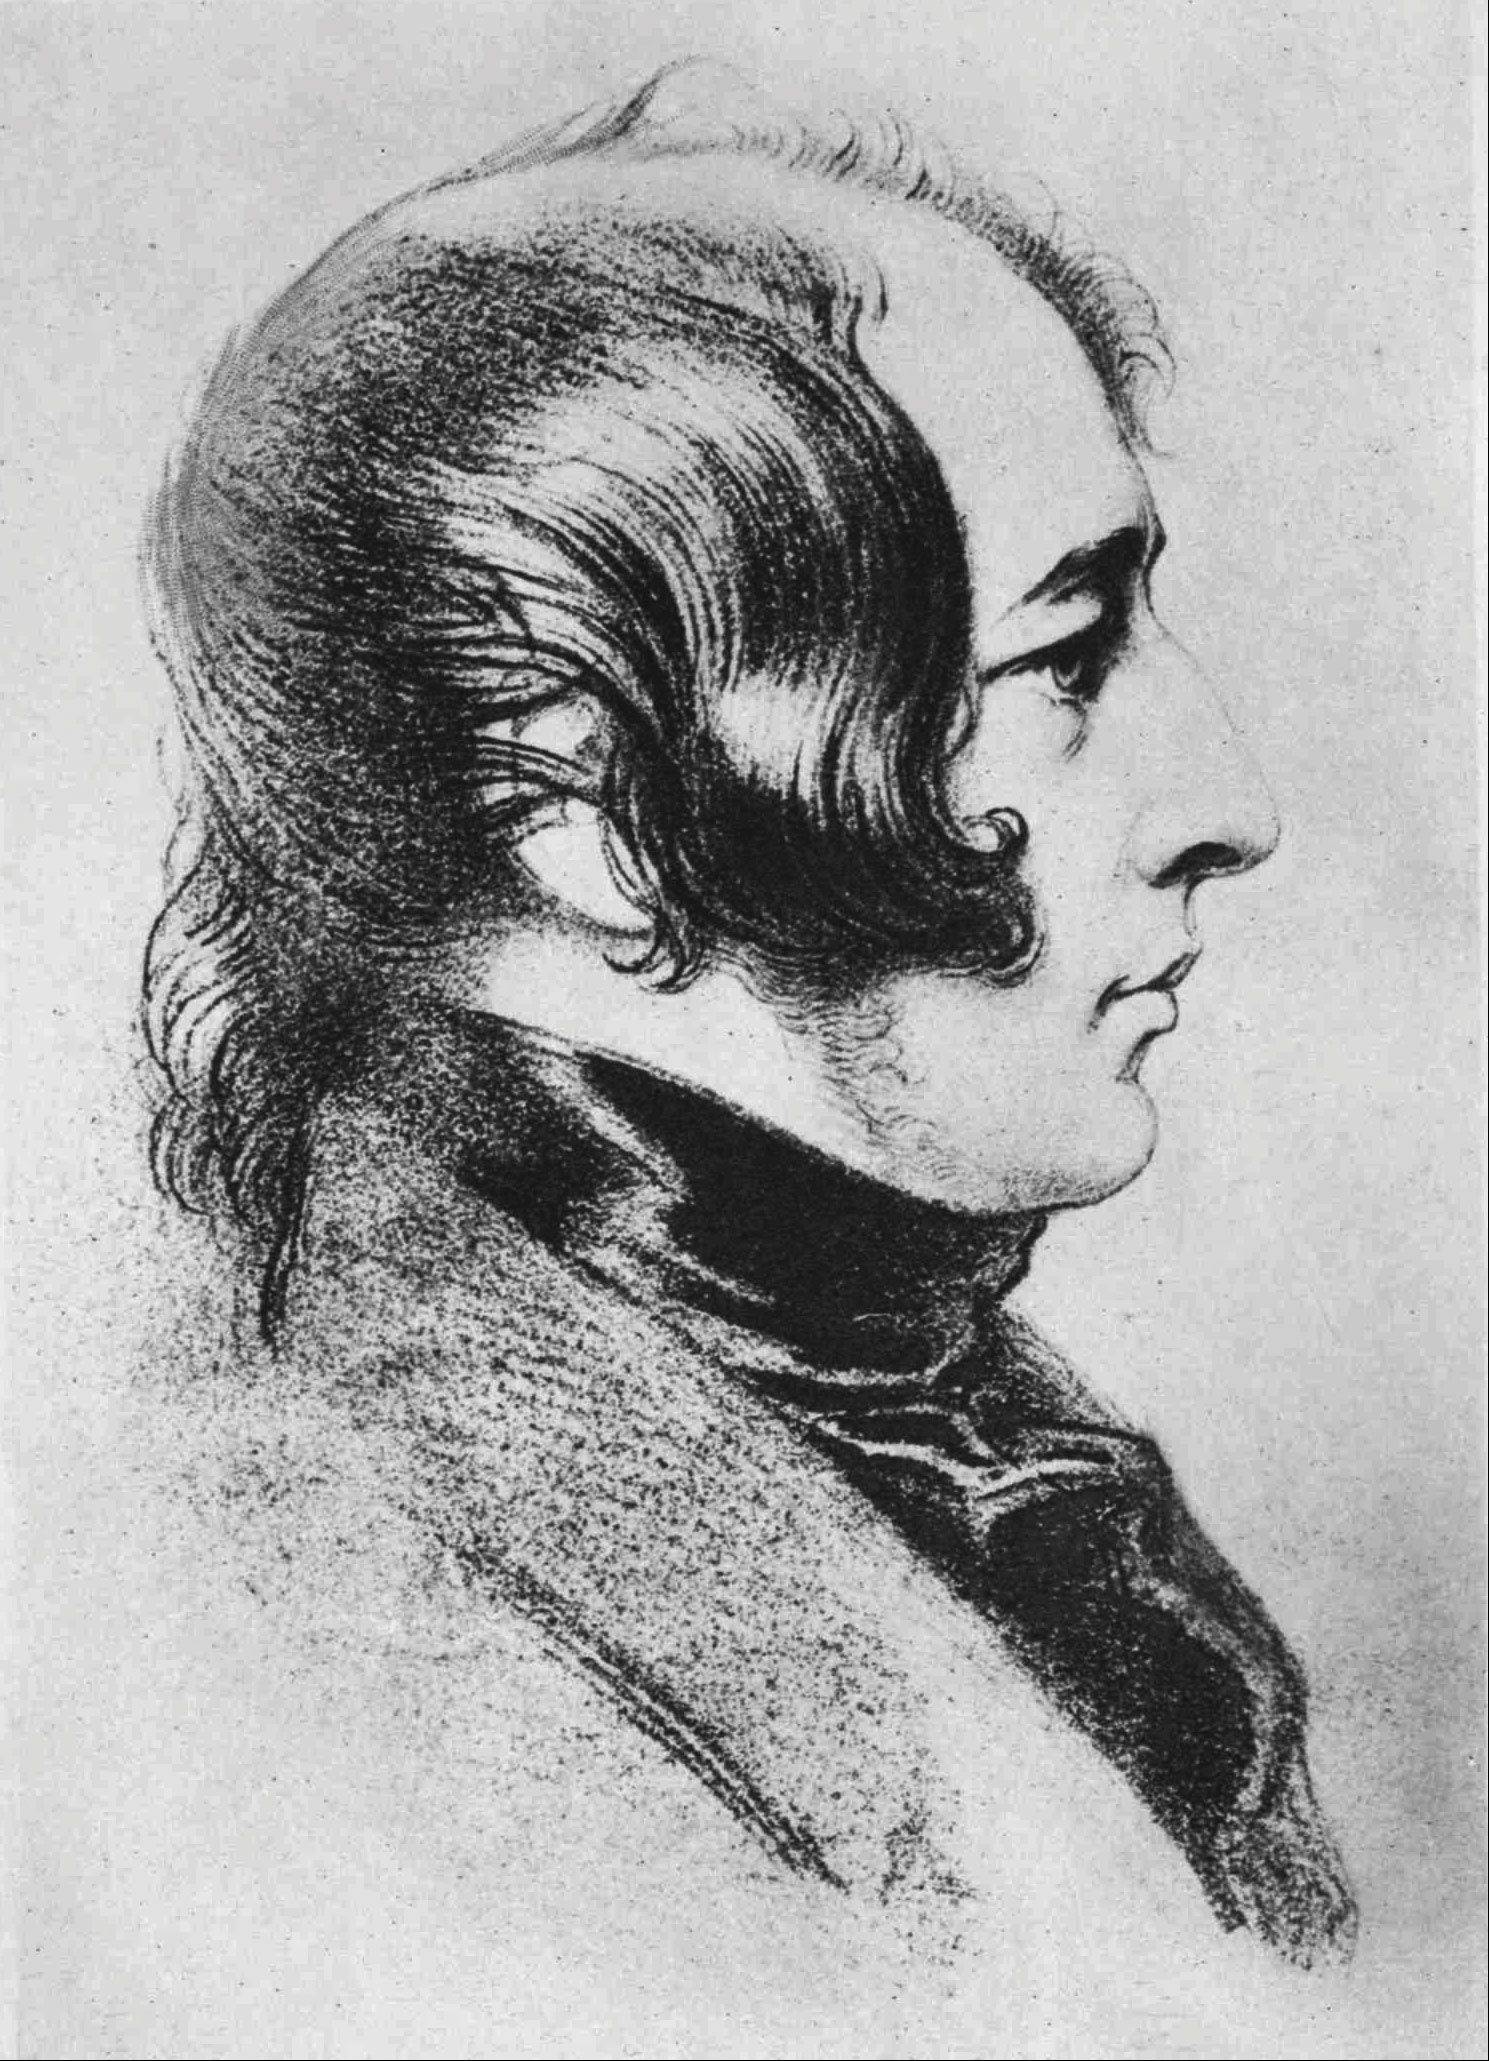 A portrait of Charles Dickens circa 1840.